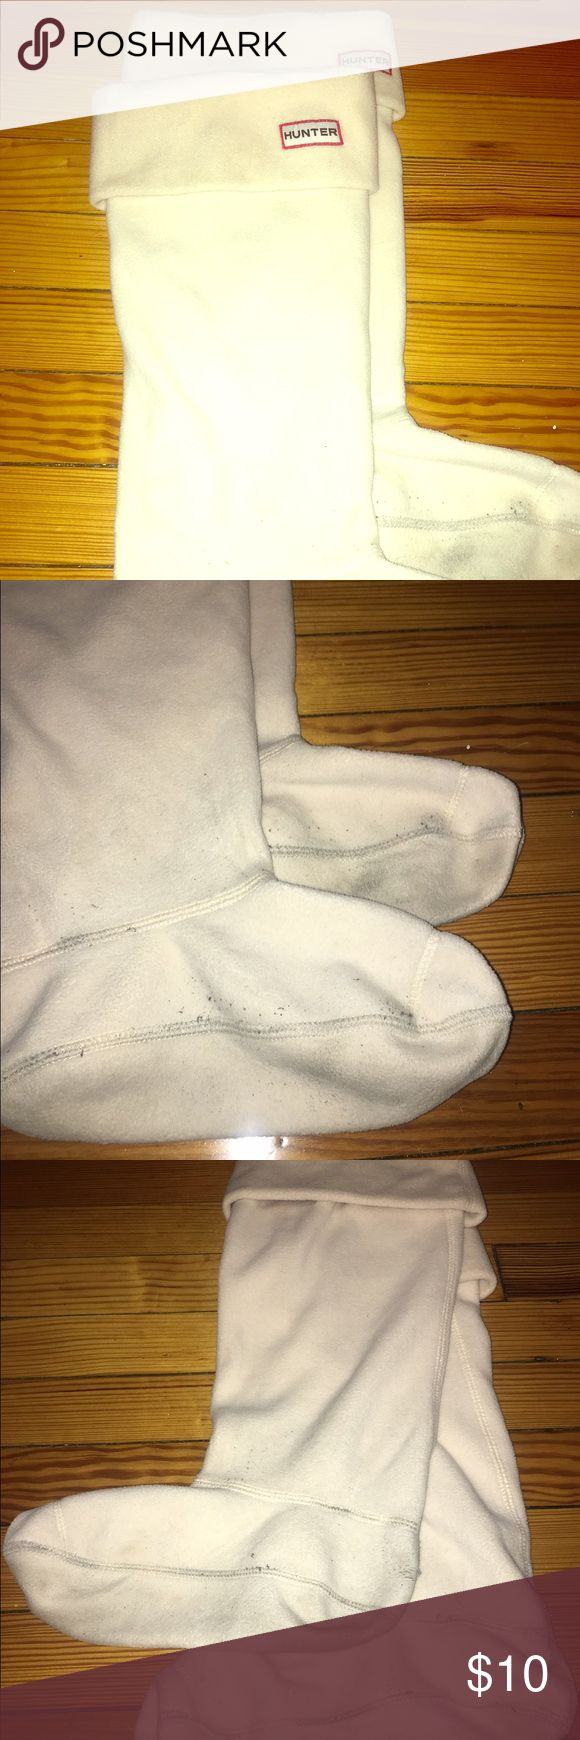 Hunter boot liners Cream, size large(8-10) WOMENS boot liners from Hunter. Somewhat worn and some discoloration on the bottom but top is in perfect condition Hunter Boots Other